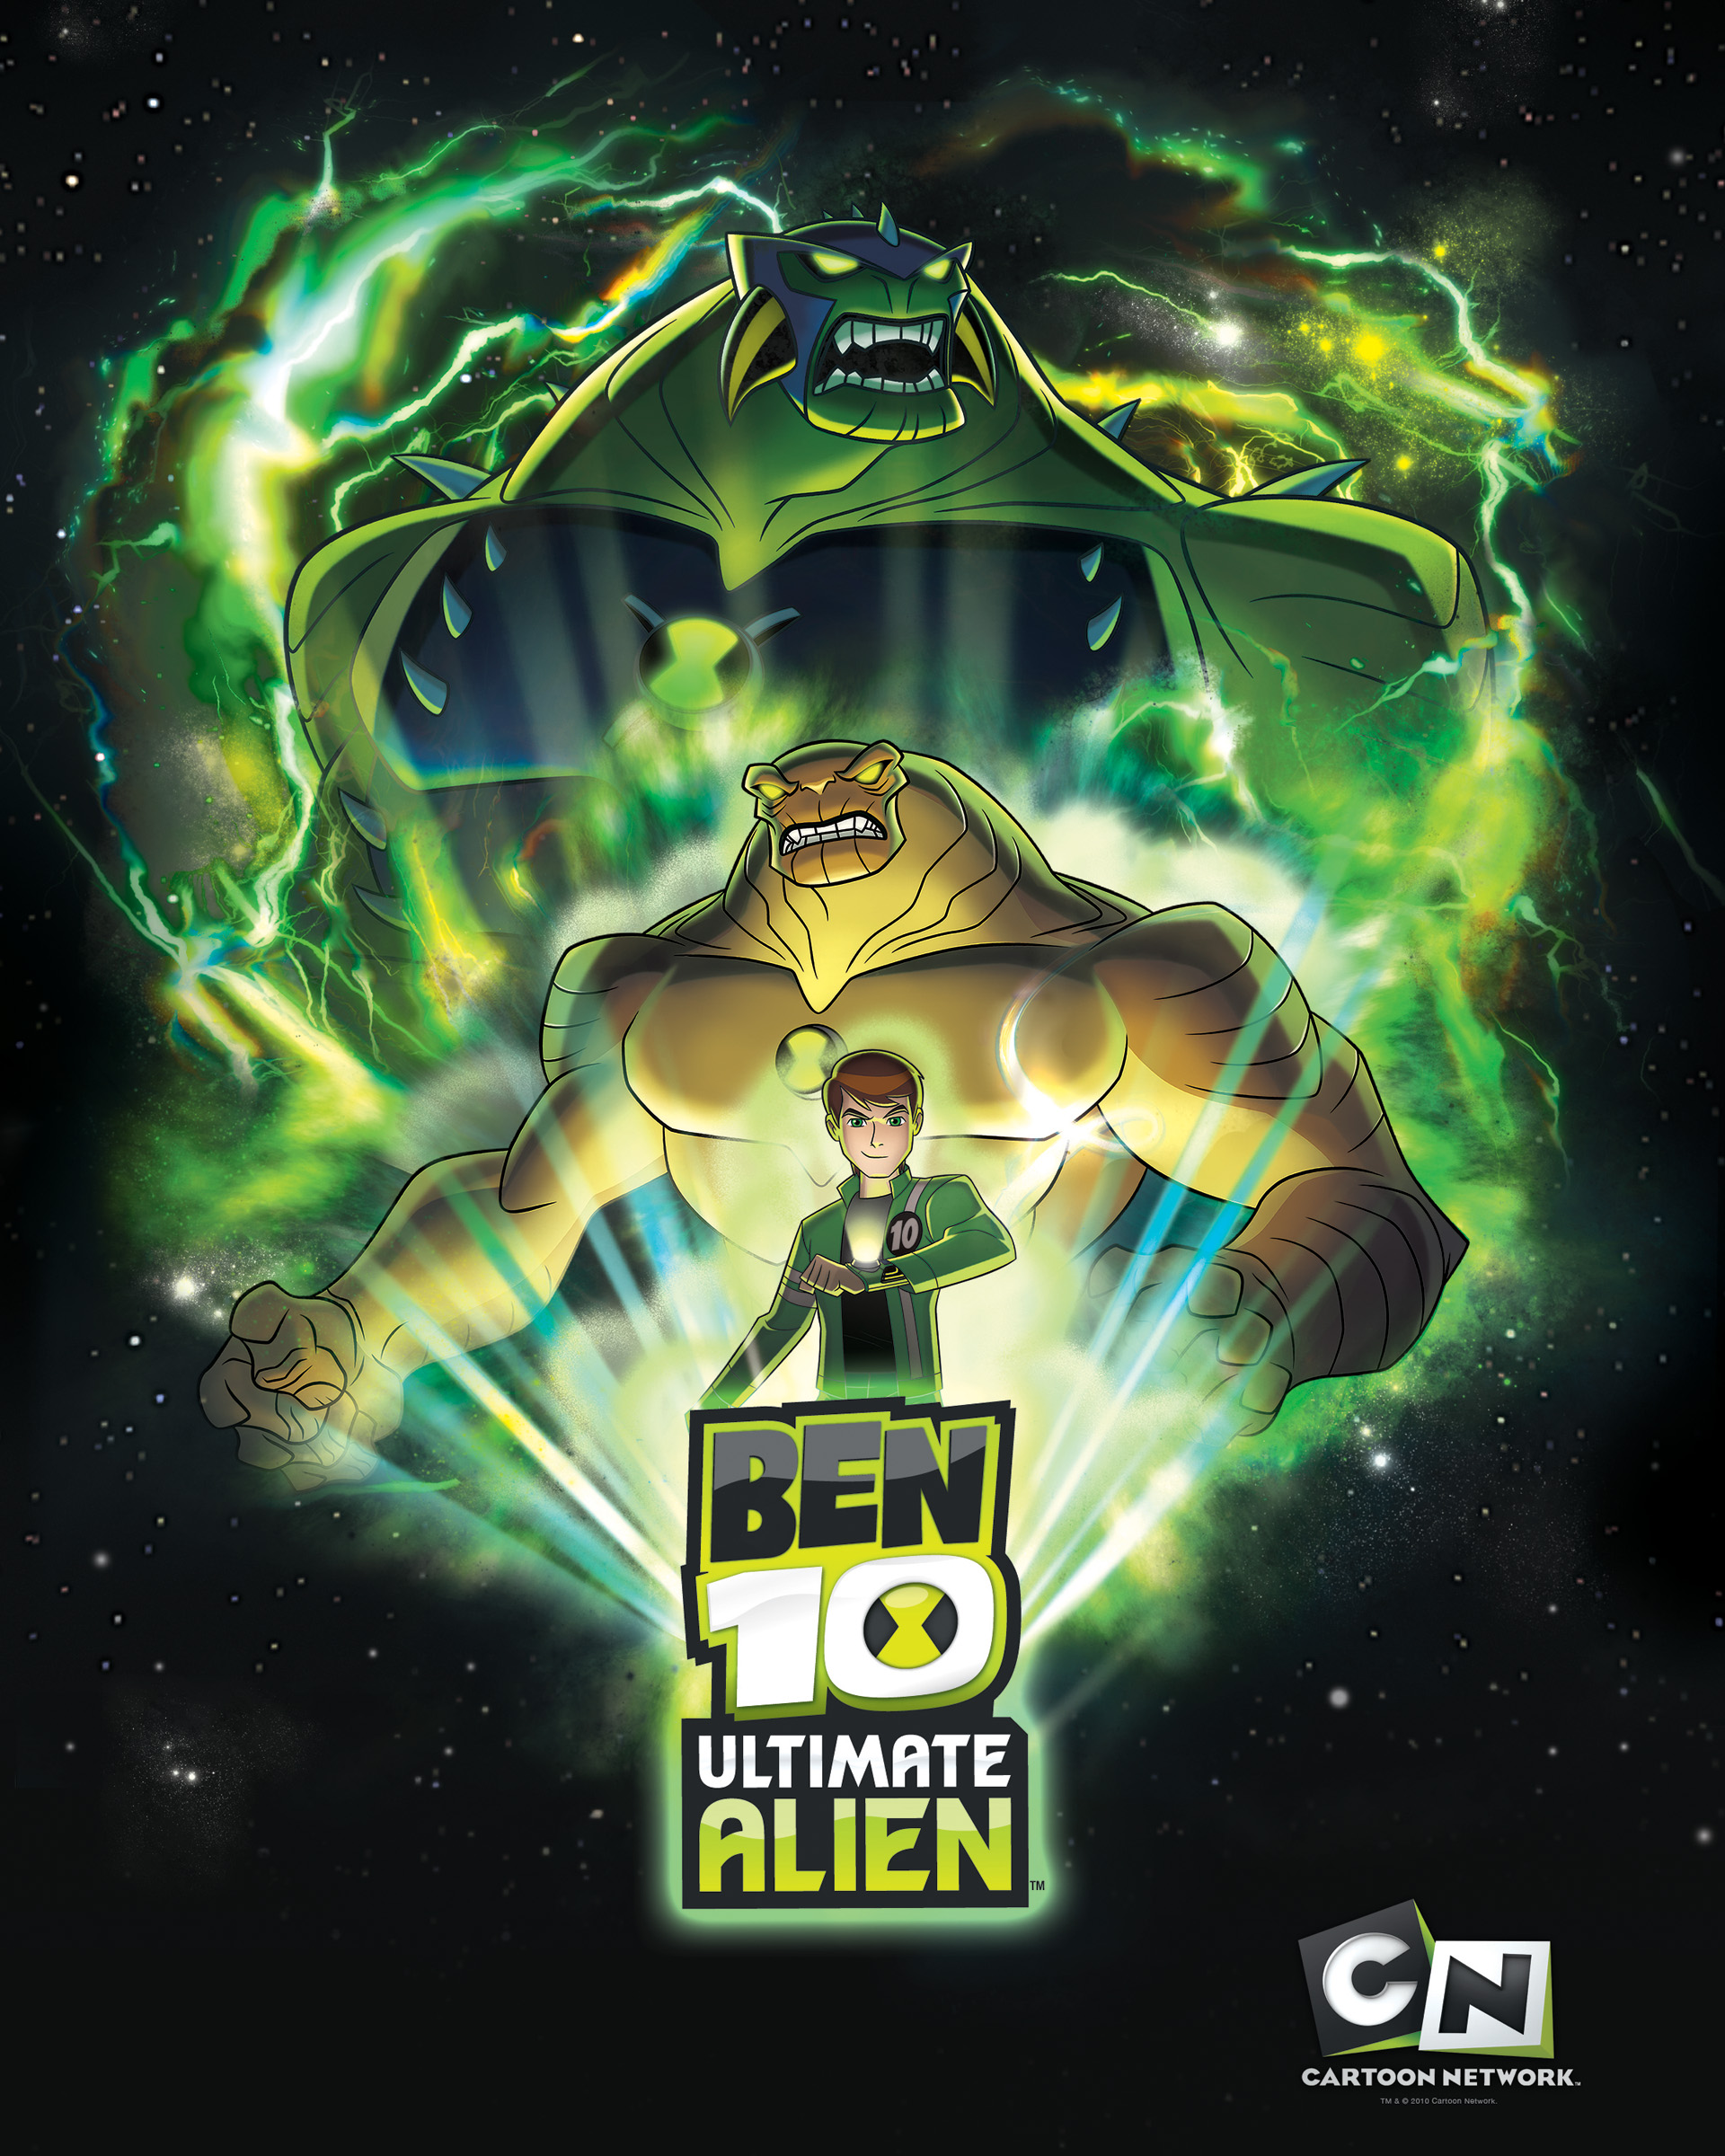 Ben 10: Ultimate Alien (TV Series 2010–2012) - IMDb